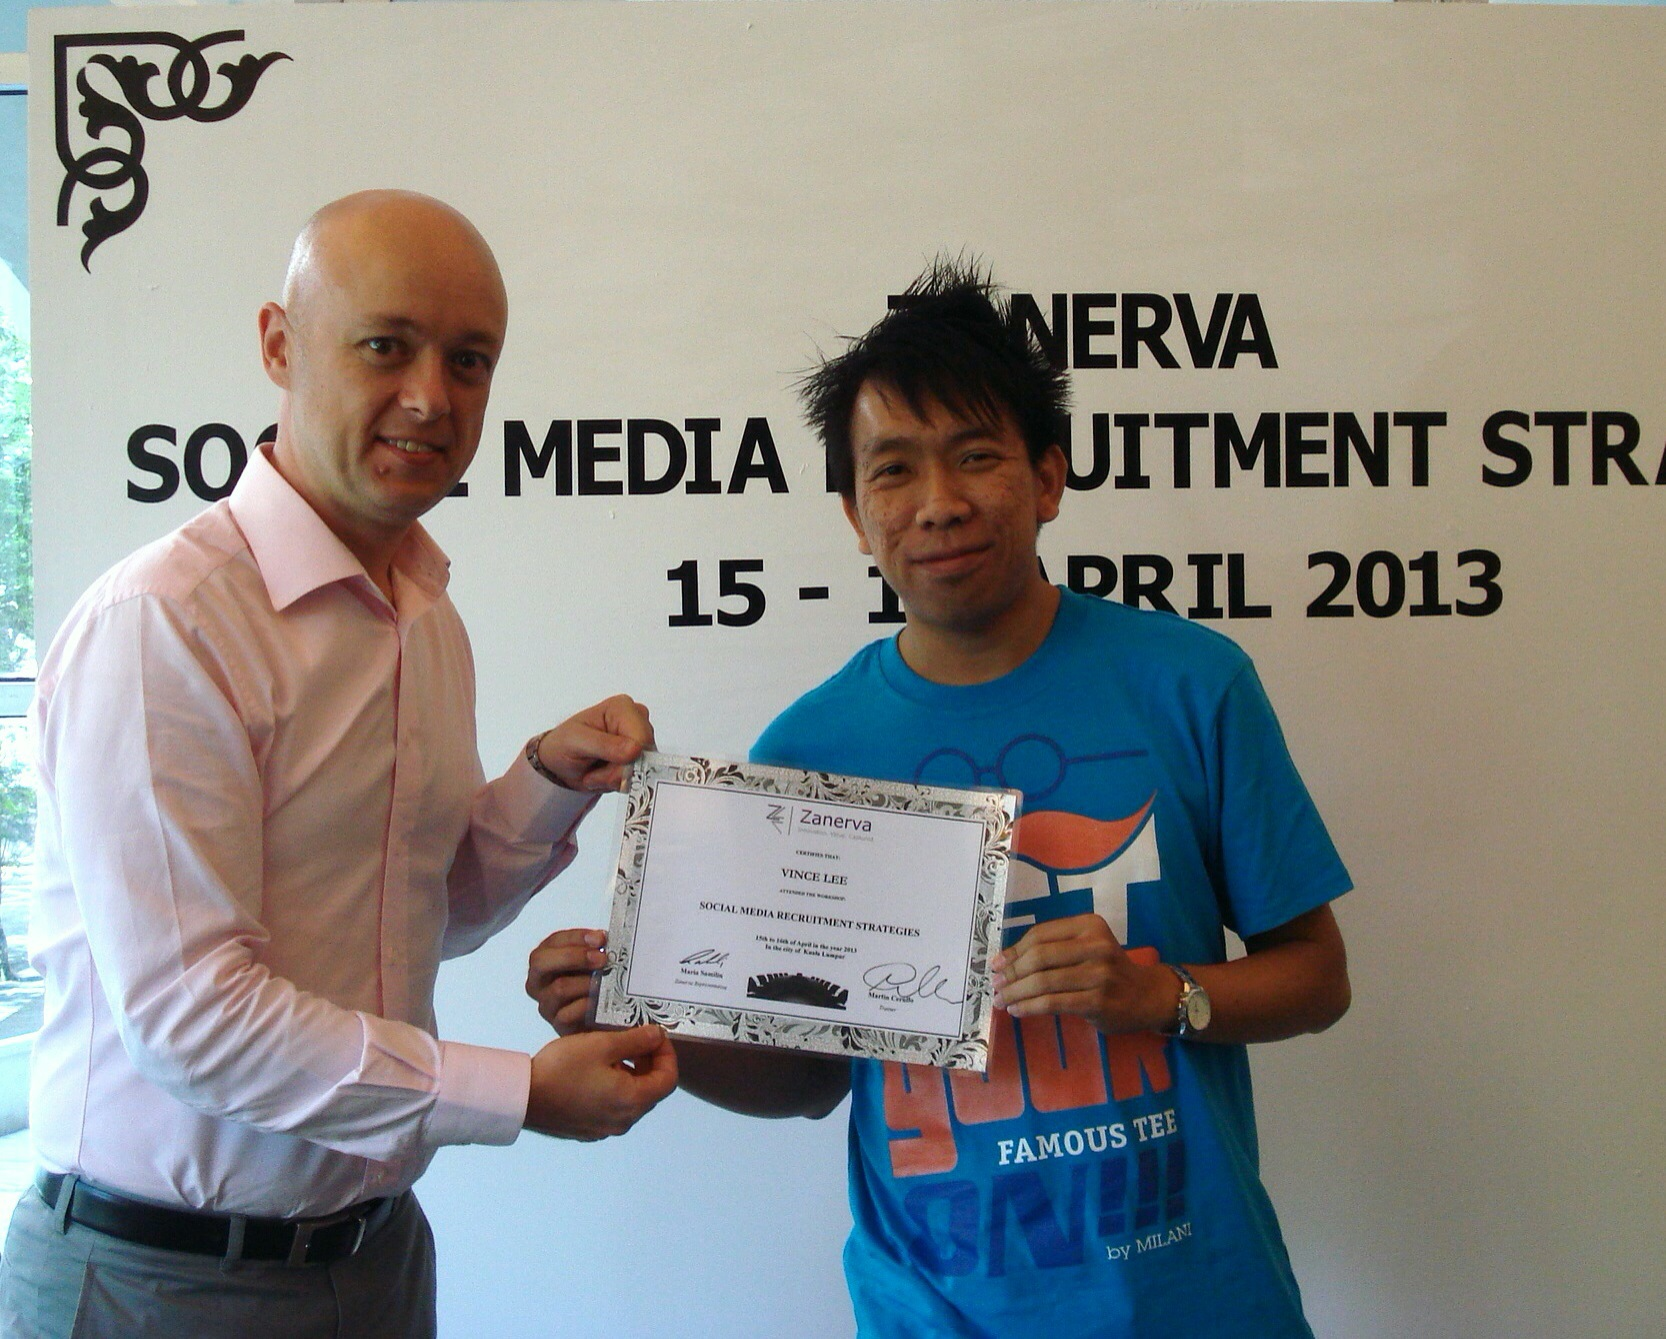 Vince Lee, Human Resource Executive at Boon Siew Honda Sdn Bhd  receiving his certificate of participation for attending the Social Media Recruitment Strategies Workshop in Kuala Lumpur